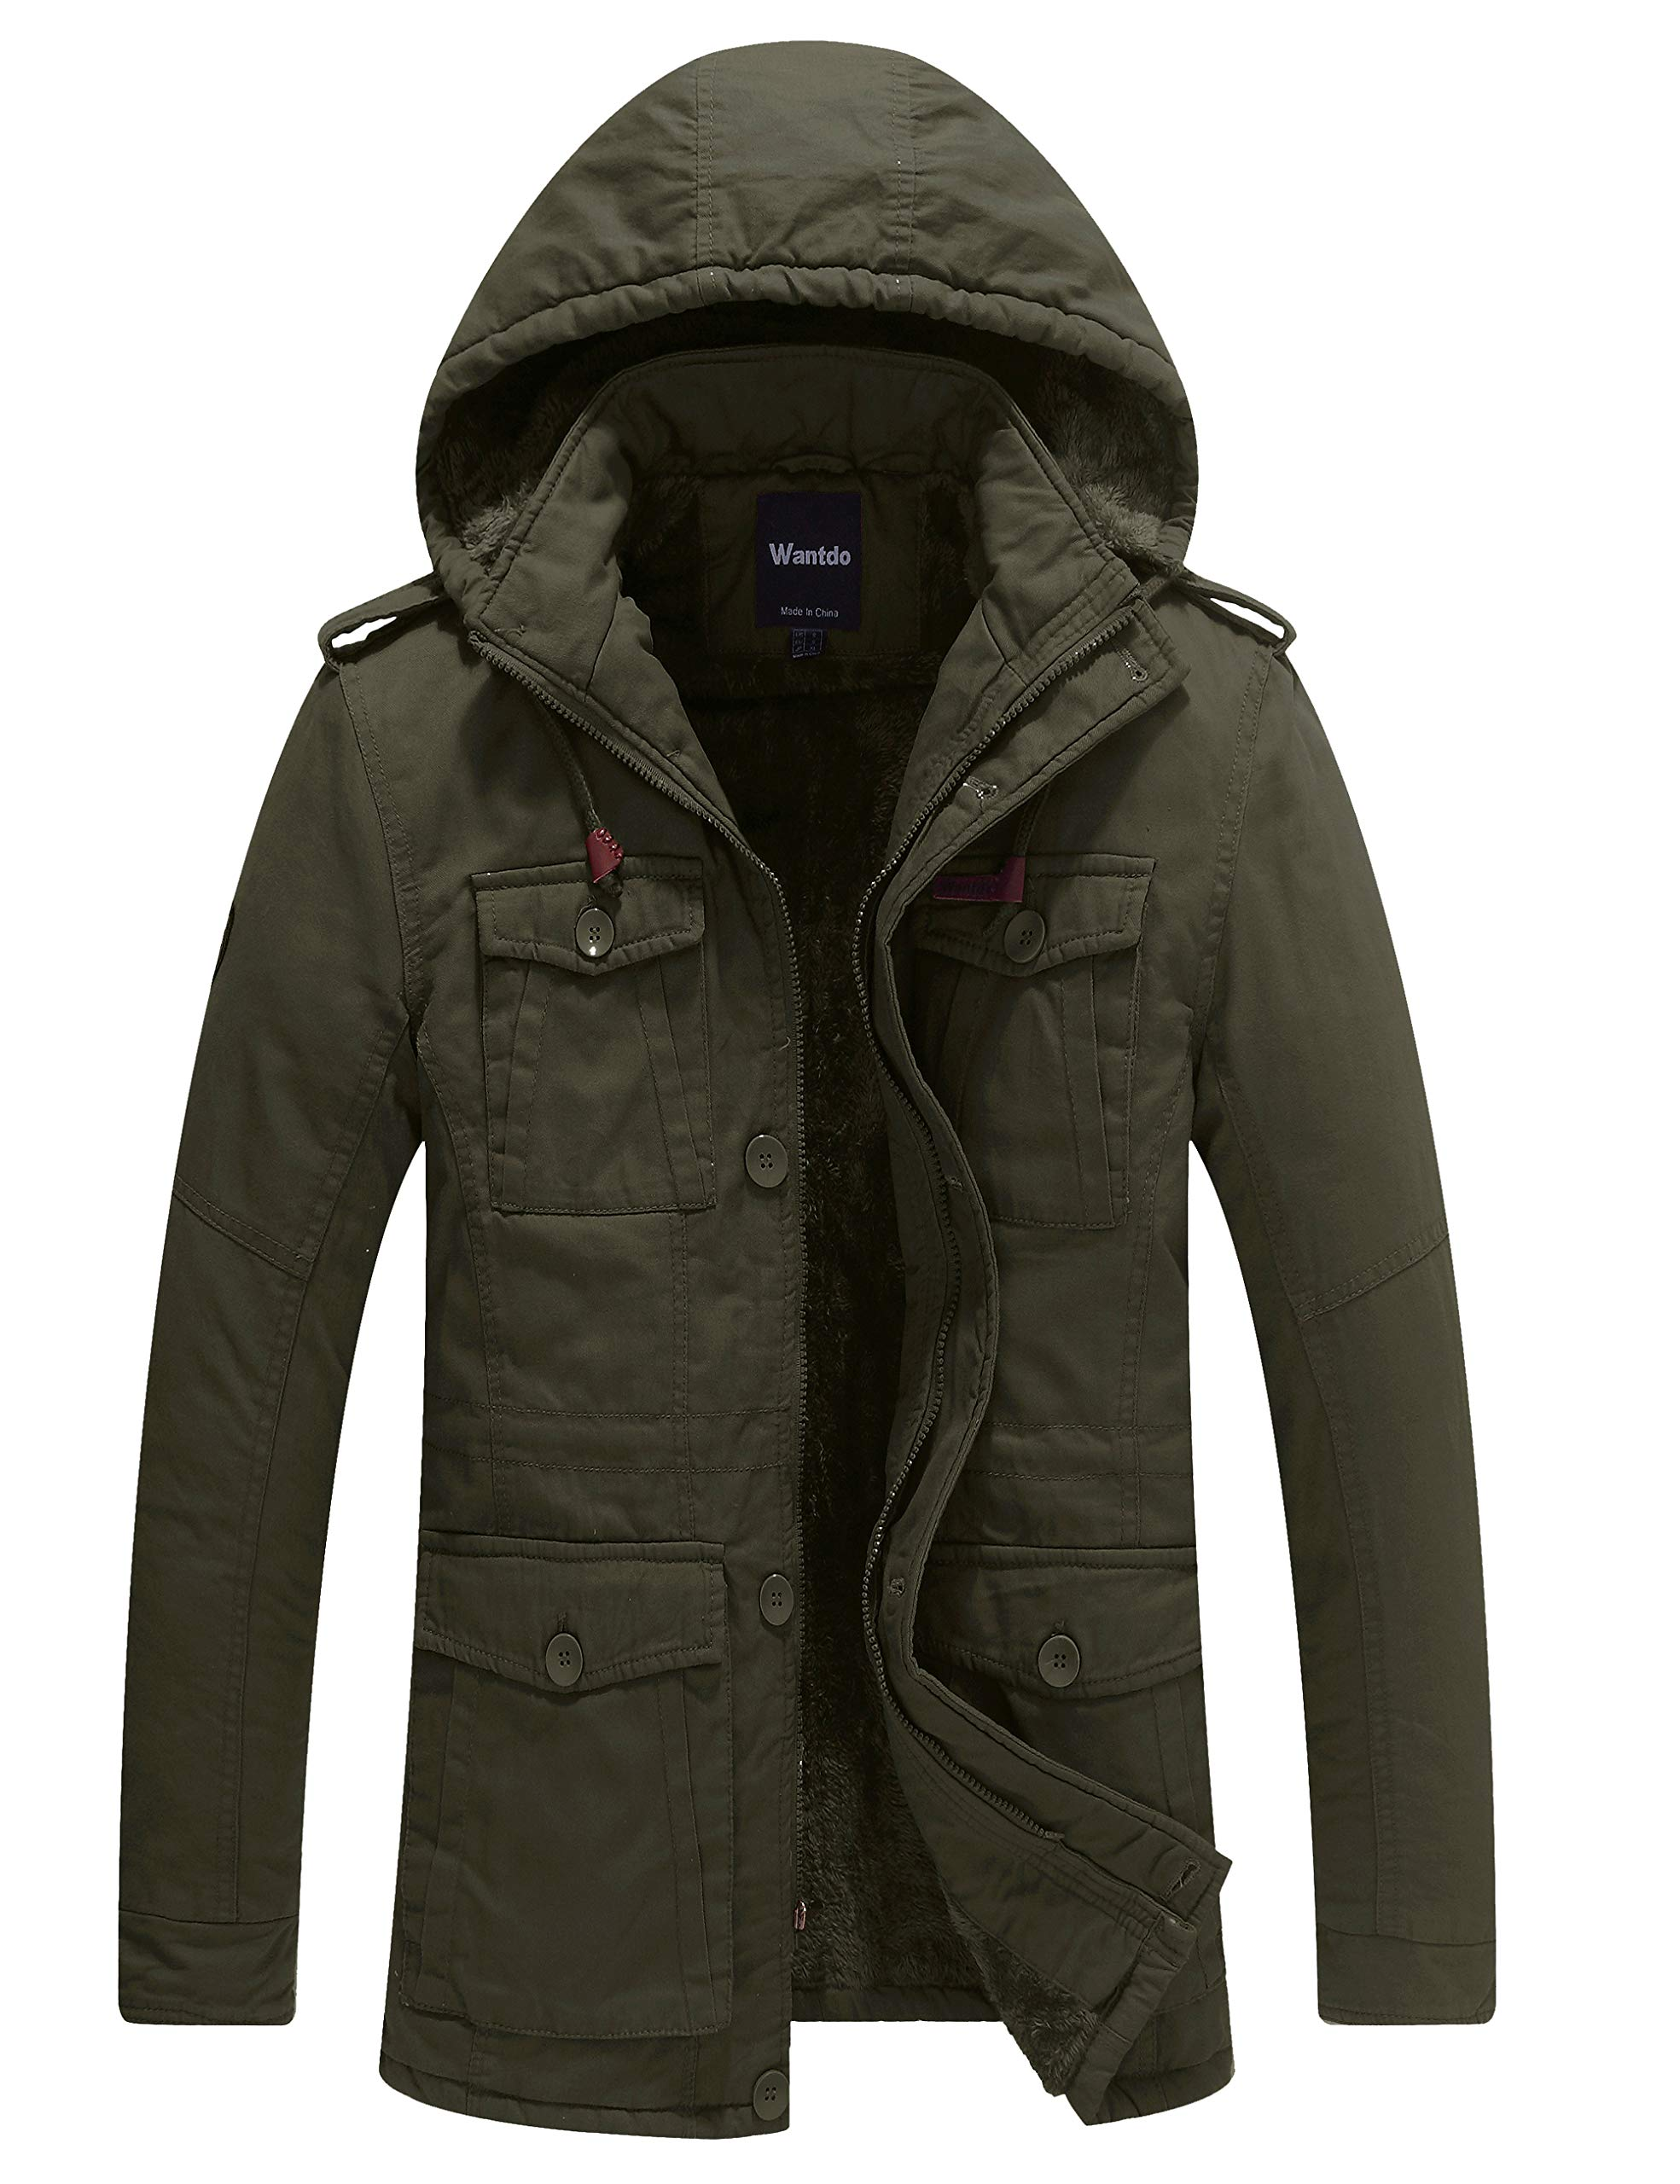 Wantdo Mens Packable Down Jacket Lightweight Winter Coat with Removable Hood